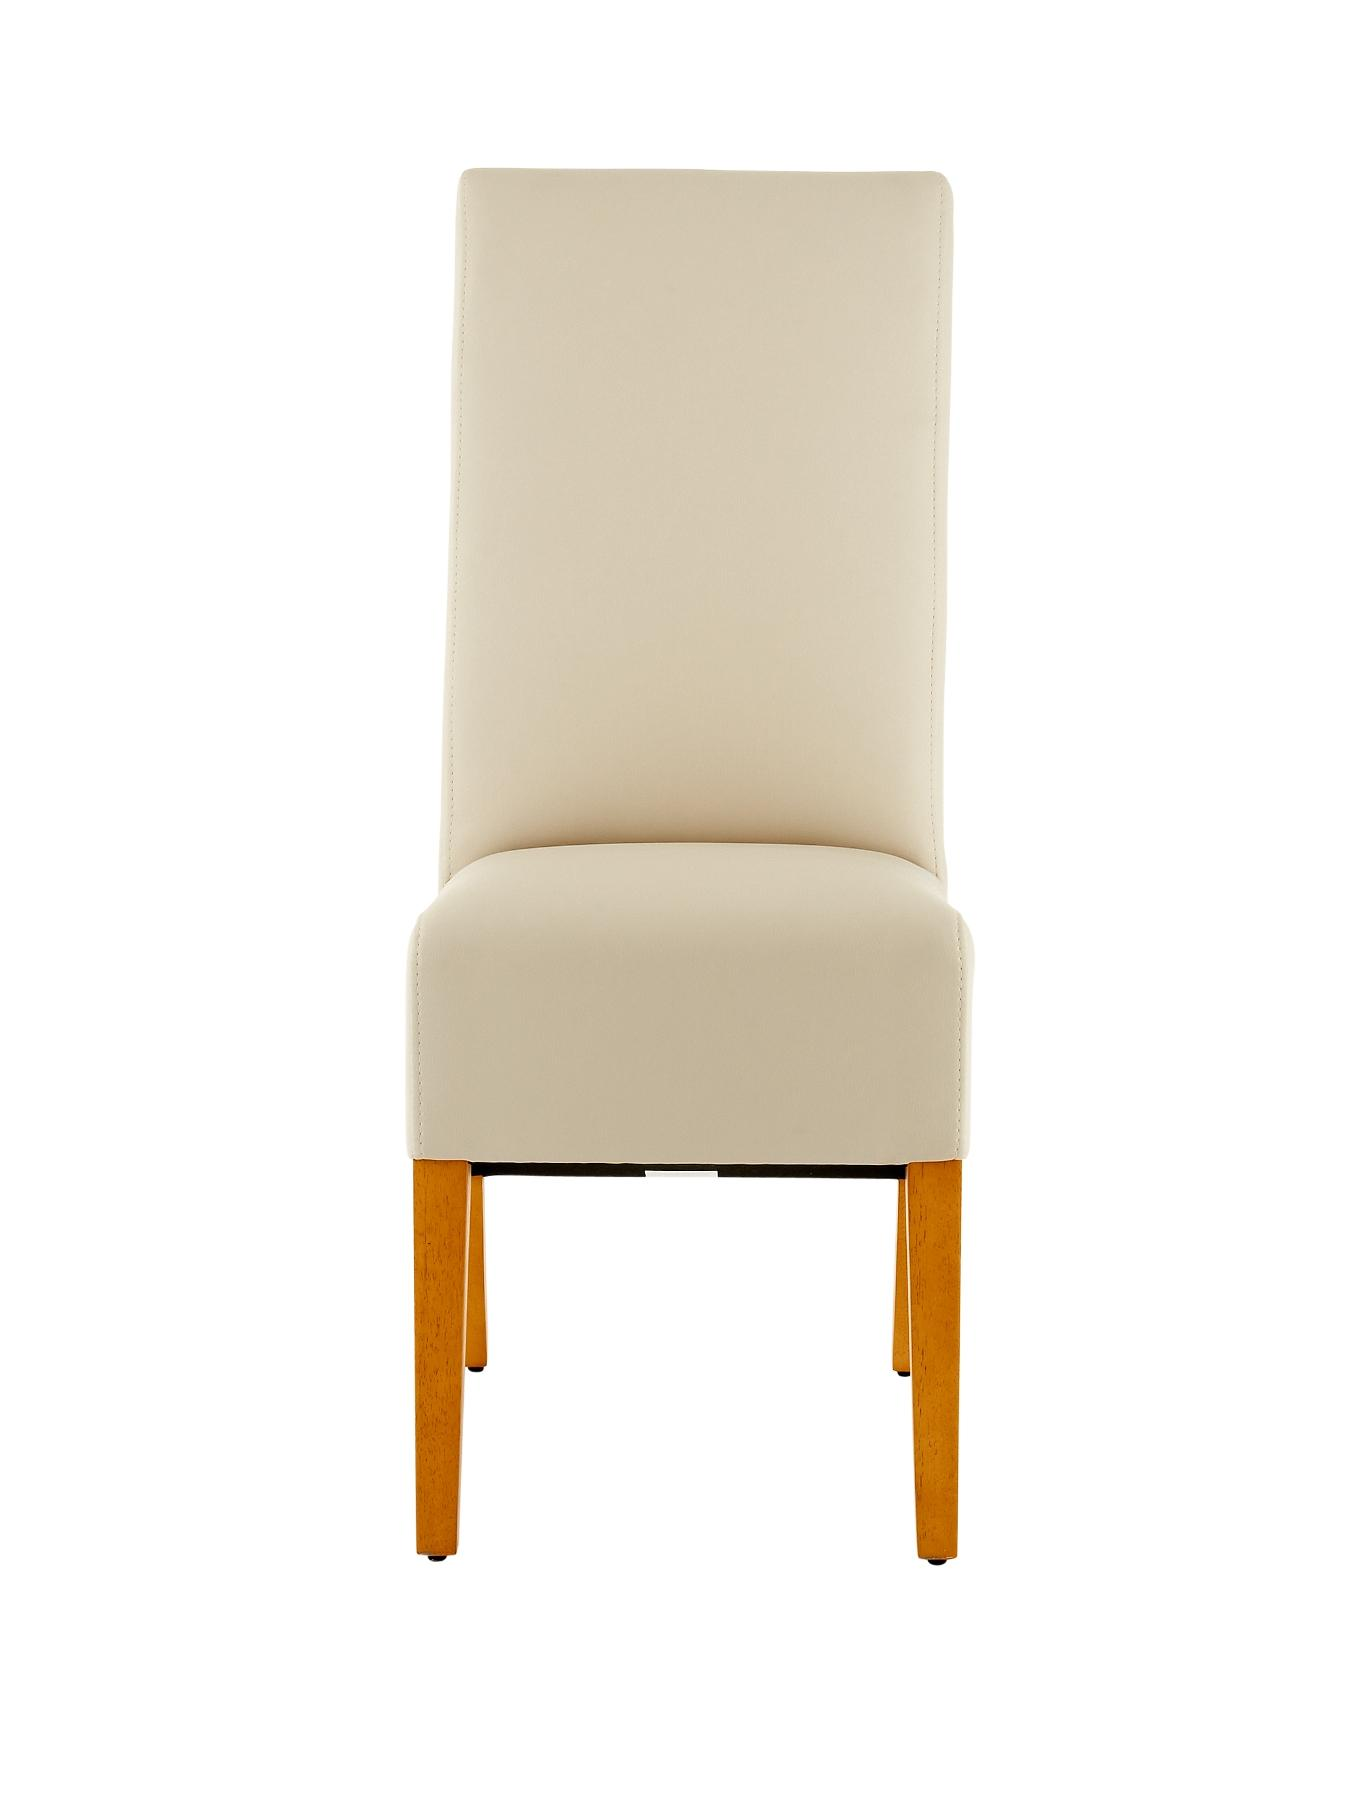 New Eternity Set of 2 Chairs - Cream, Cream,Black,Brown